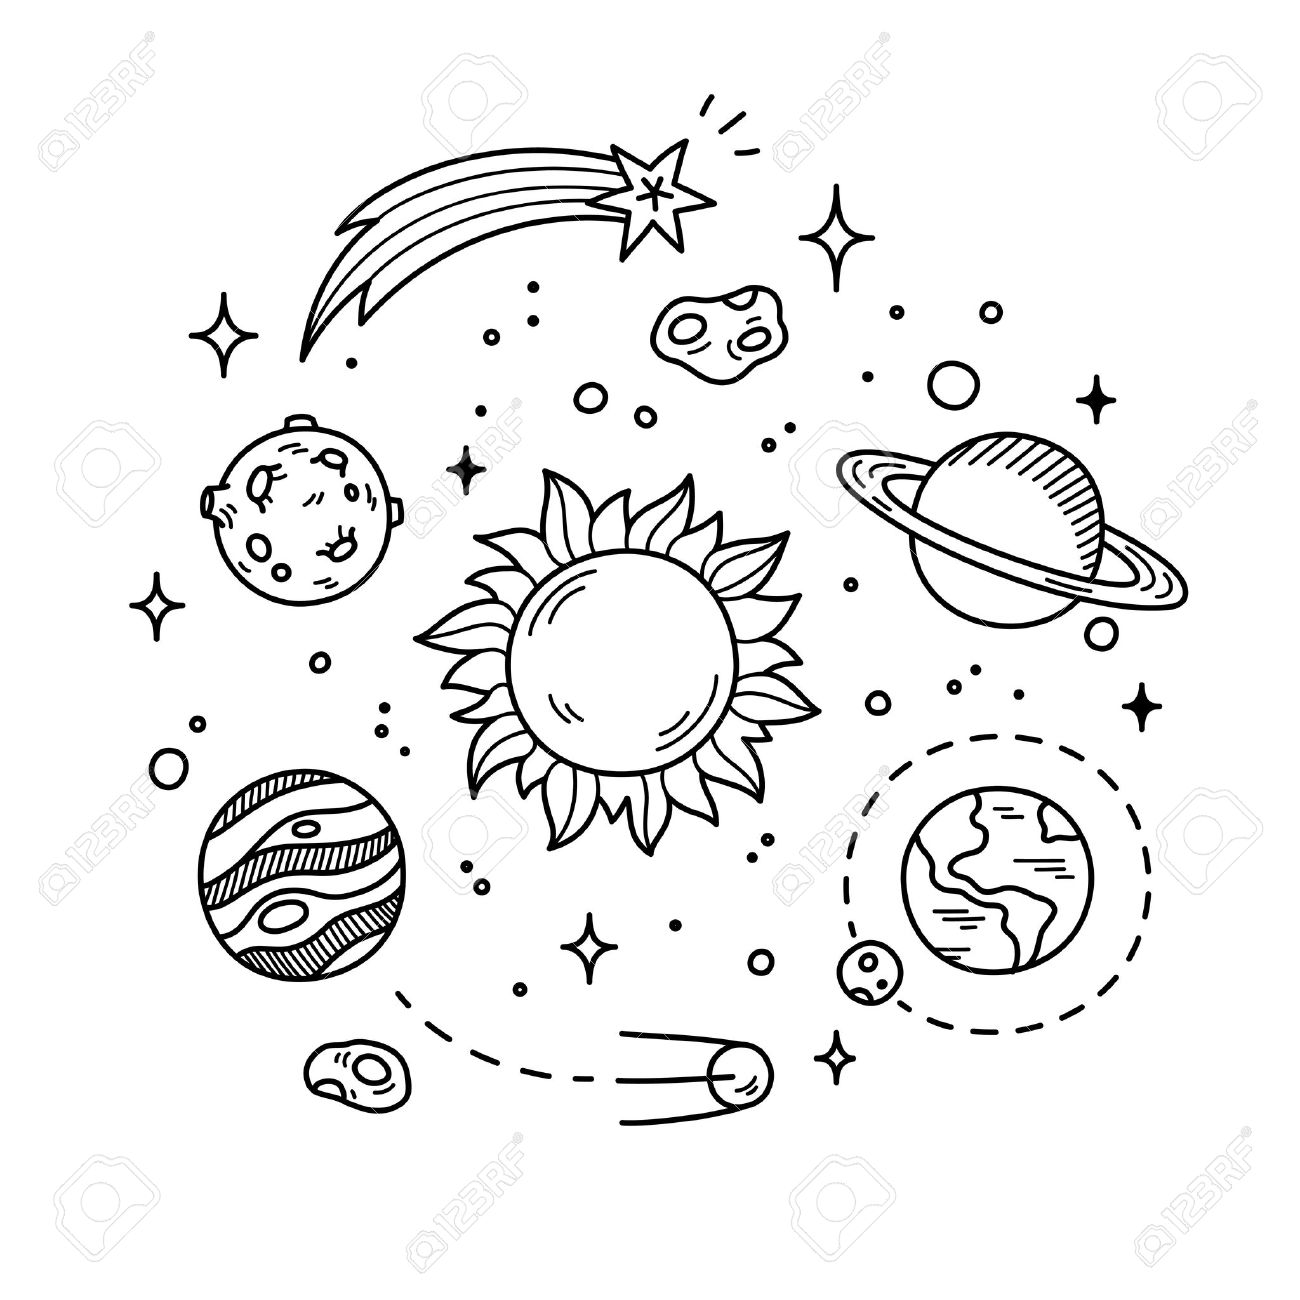 1300x1300 Hand Drawn Solar System With Sun, Planets, Asteroids And Other